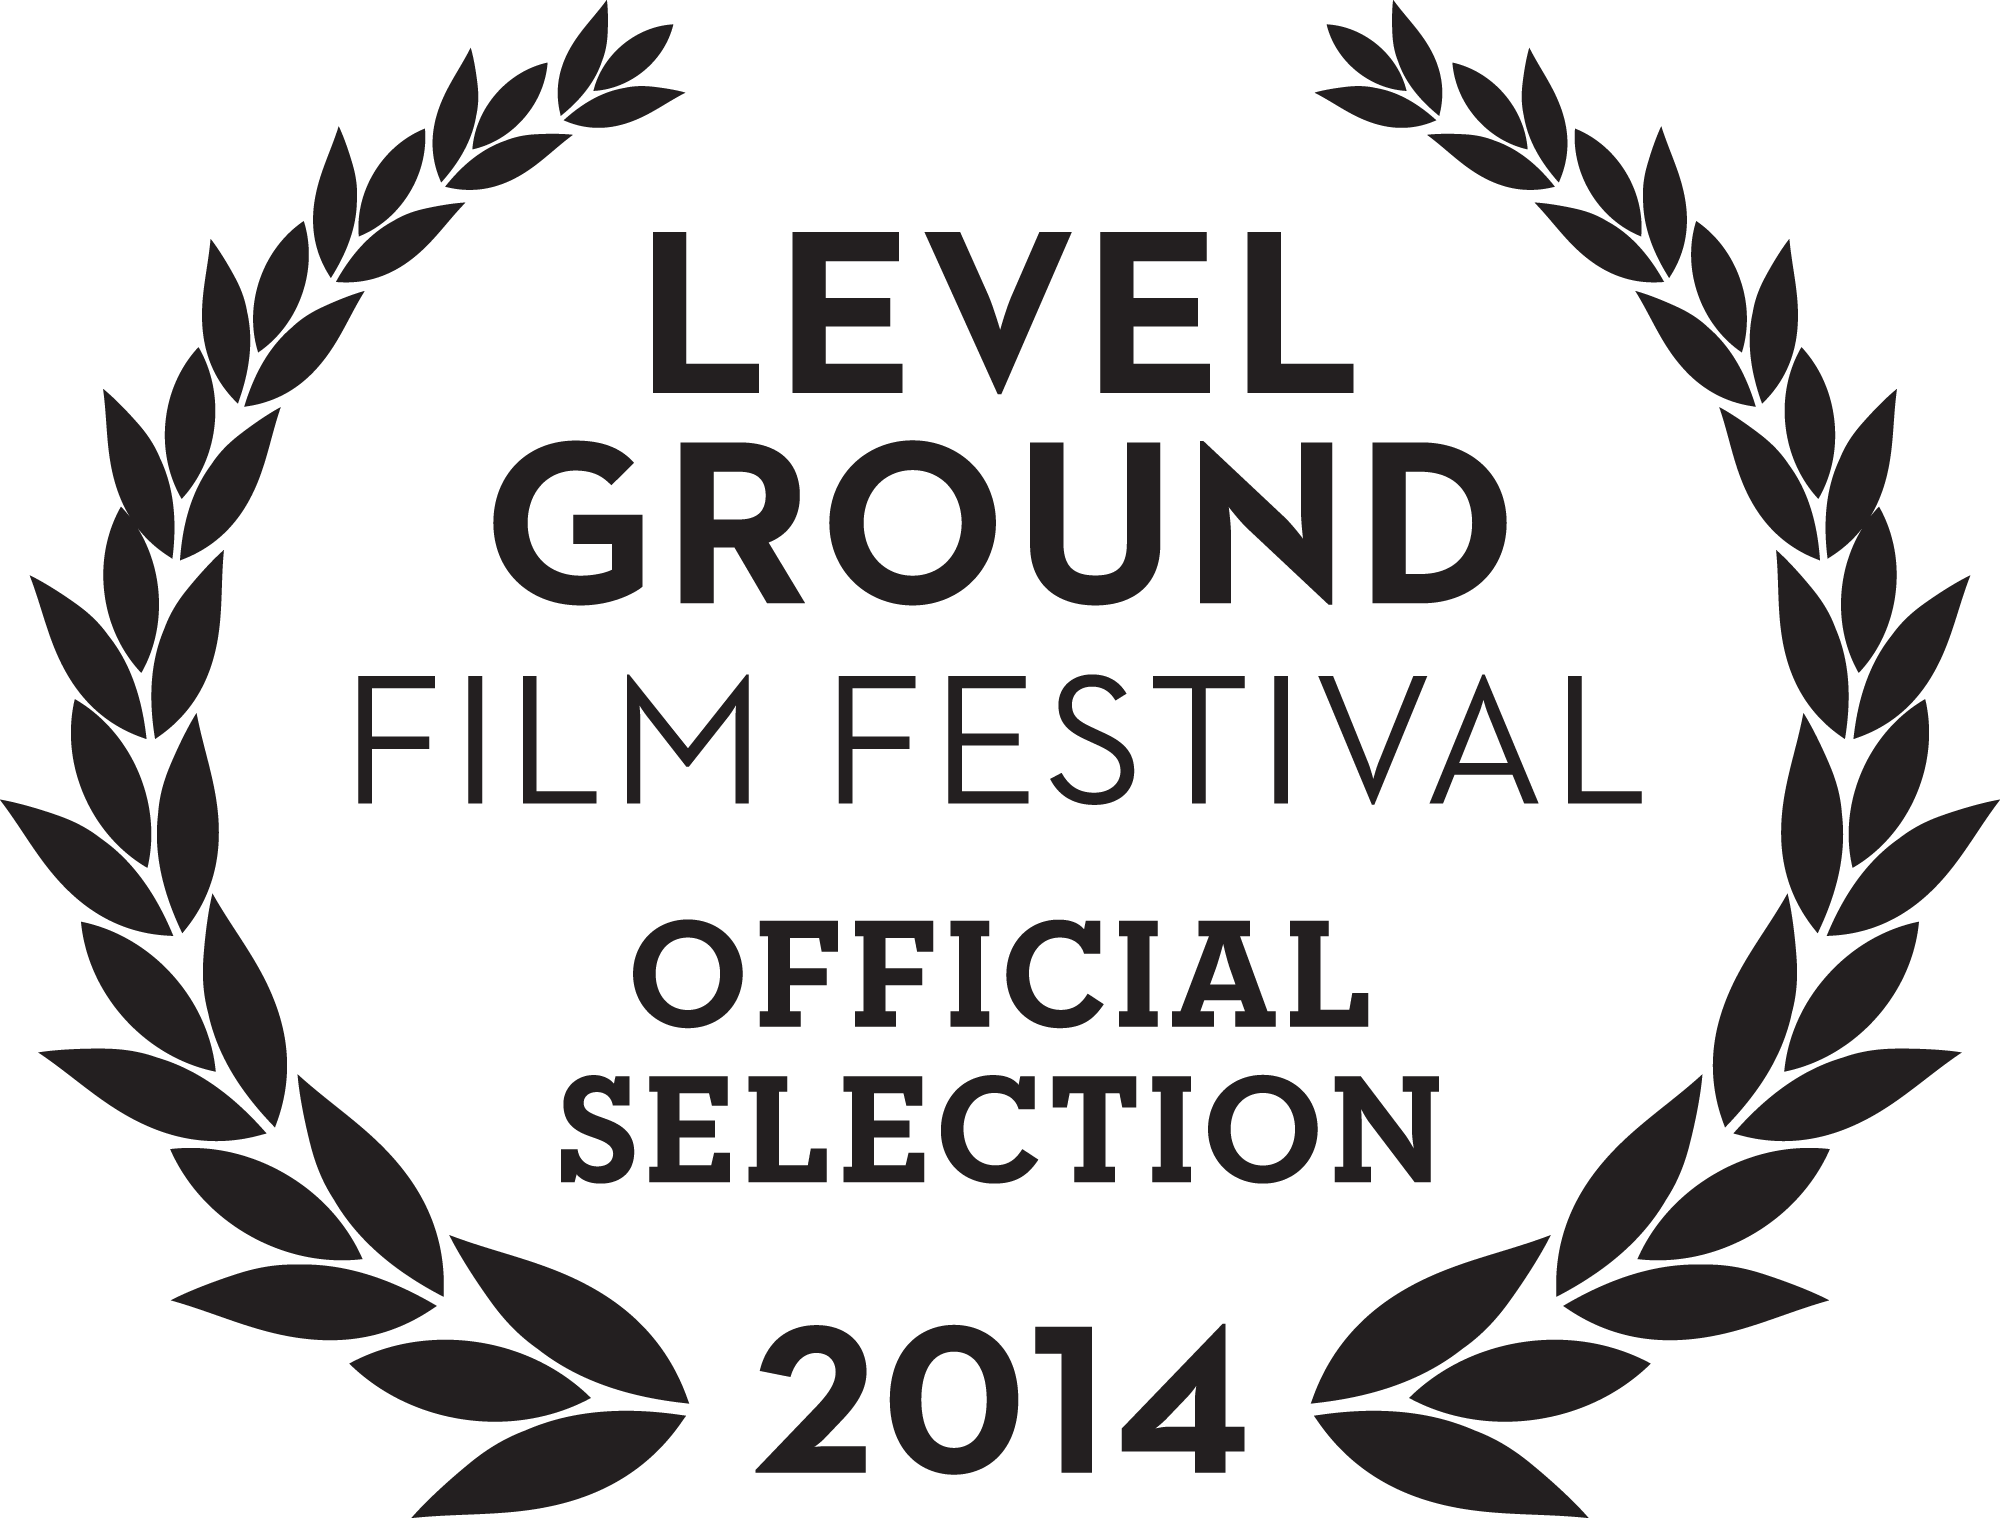 Level Ground Film Festival 2014 Official Selection